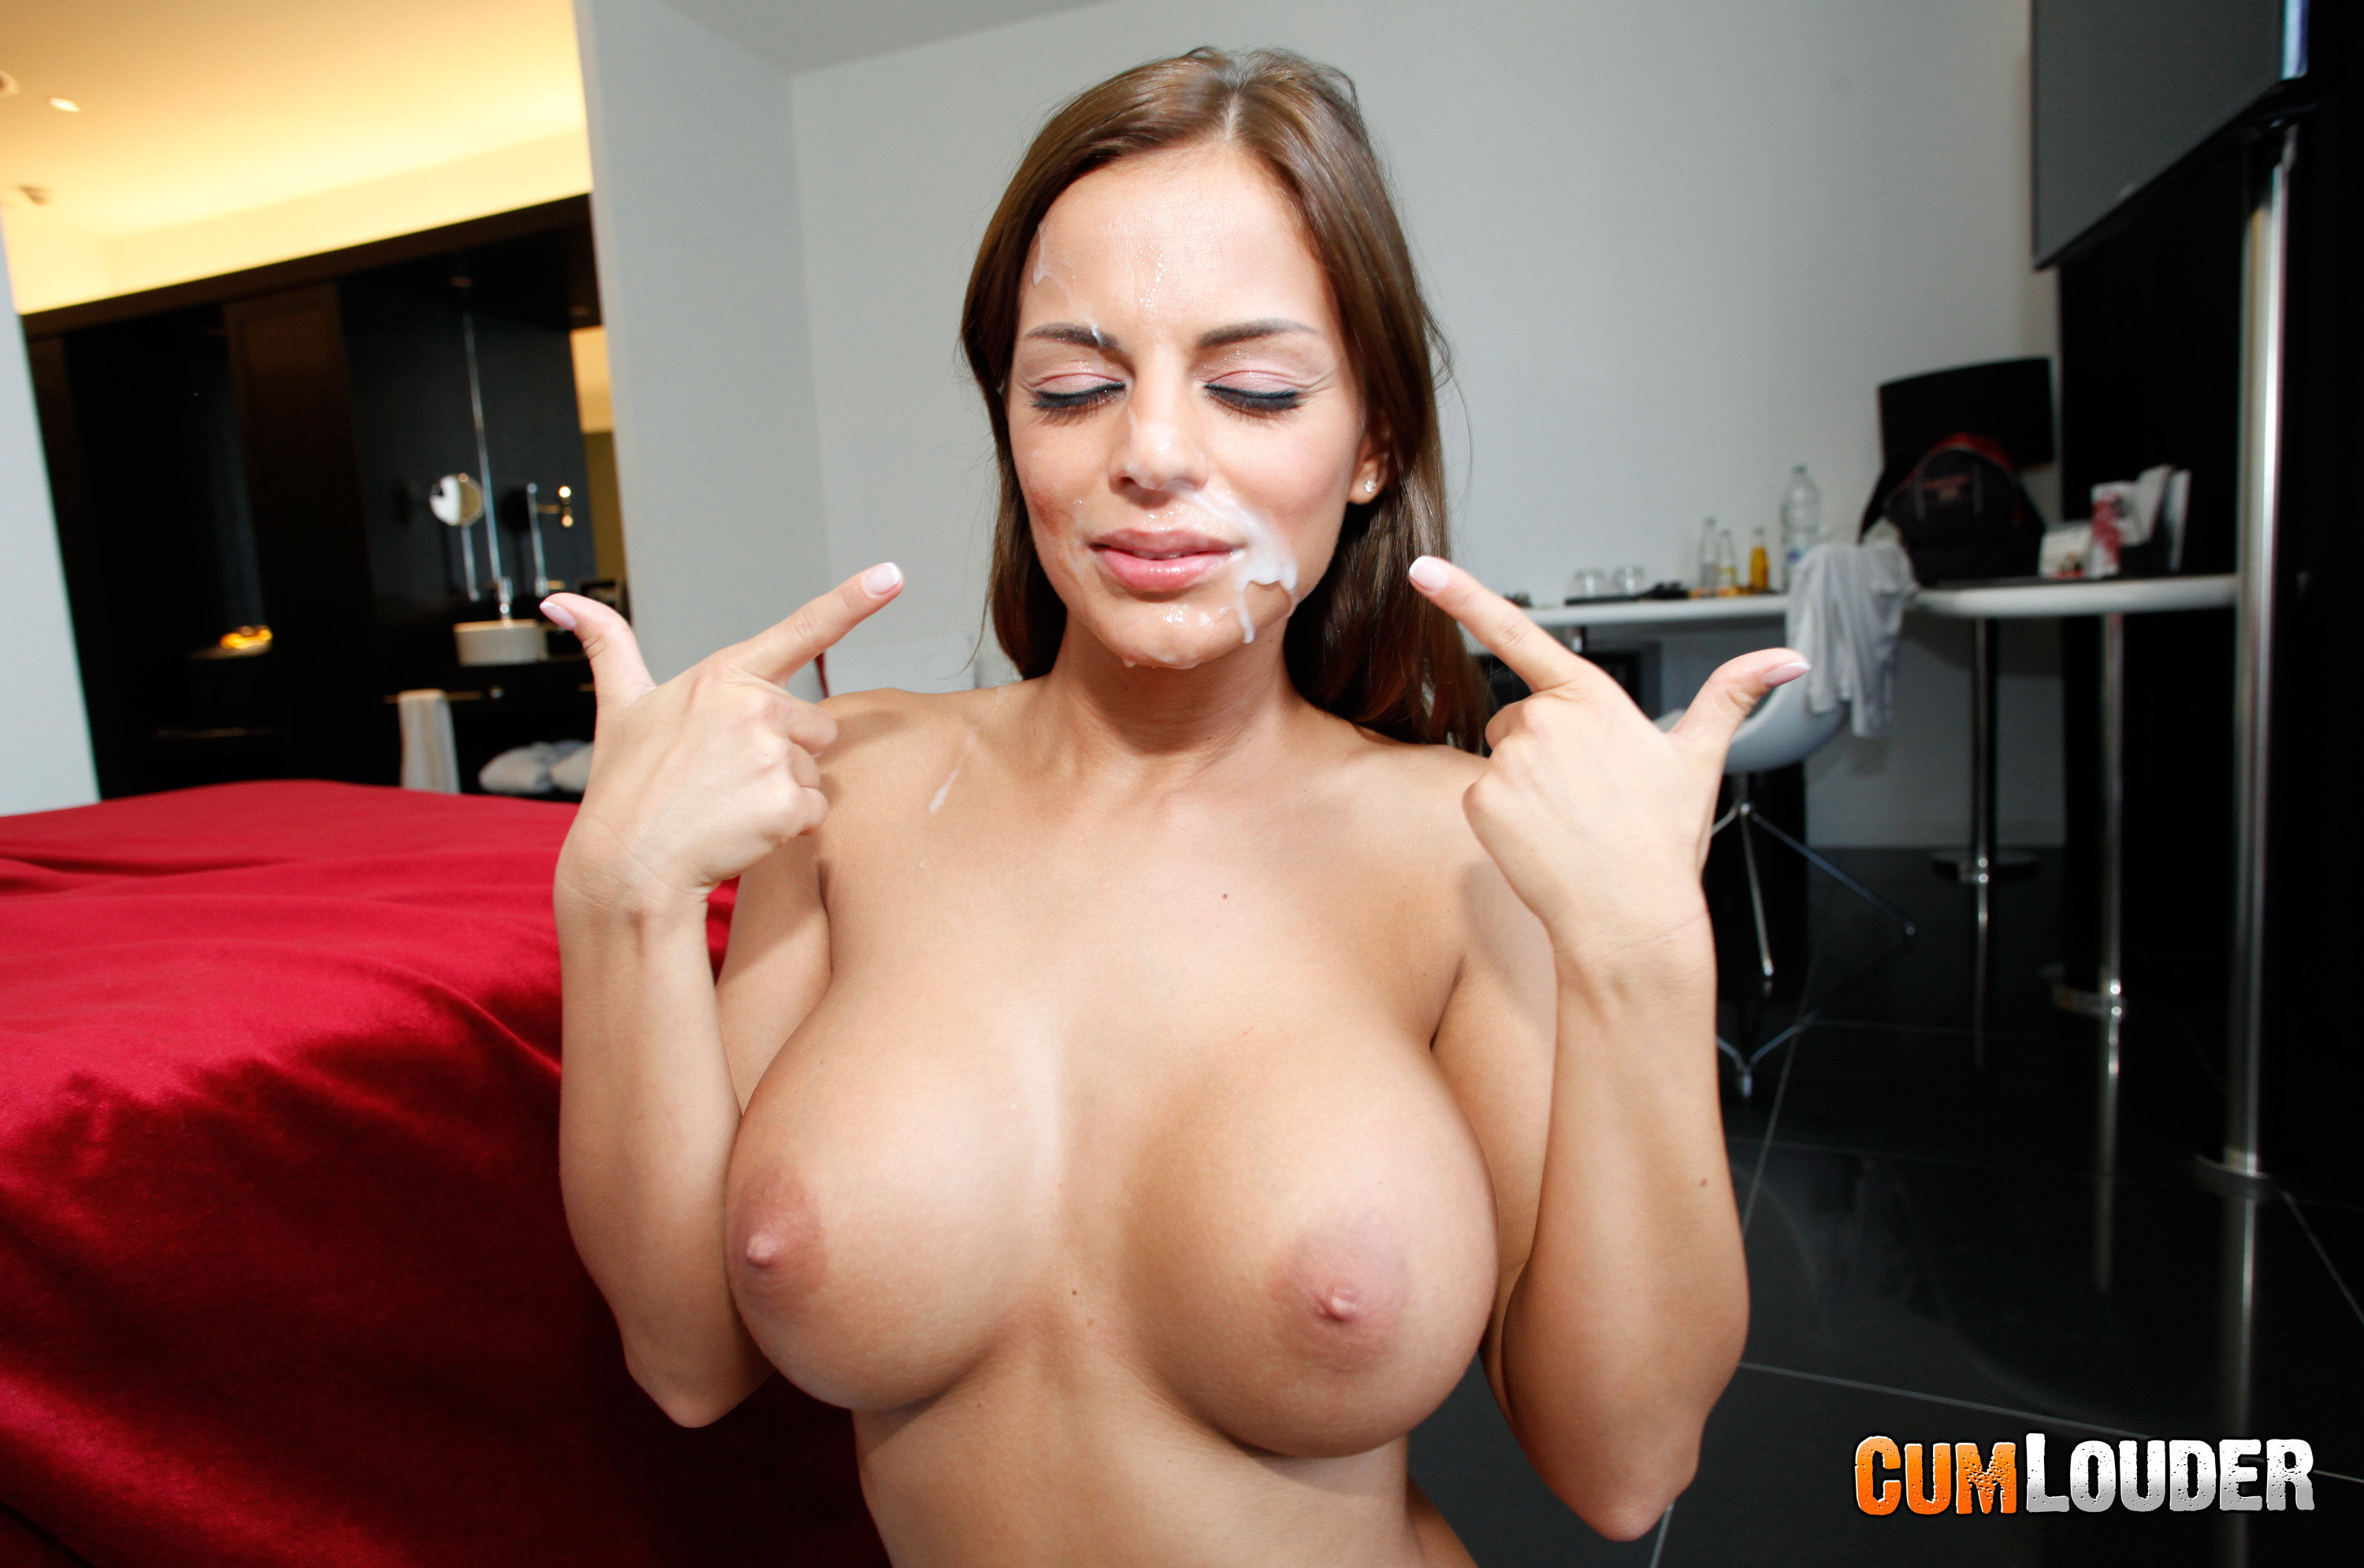 Hd passionhd sexy alexis adams gets pampered and massaged - 1 part 4